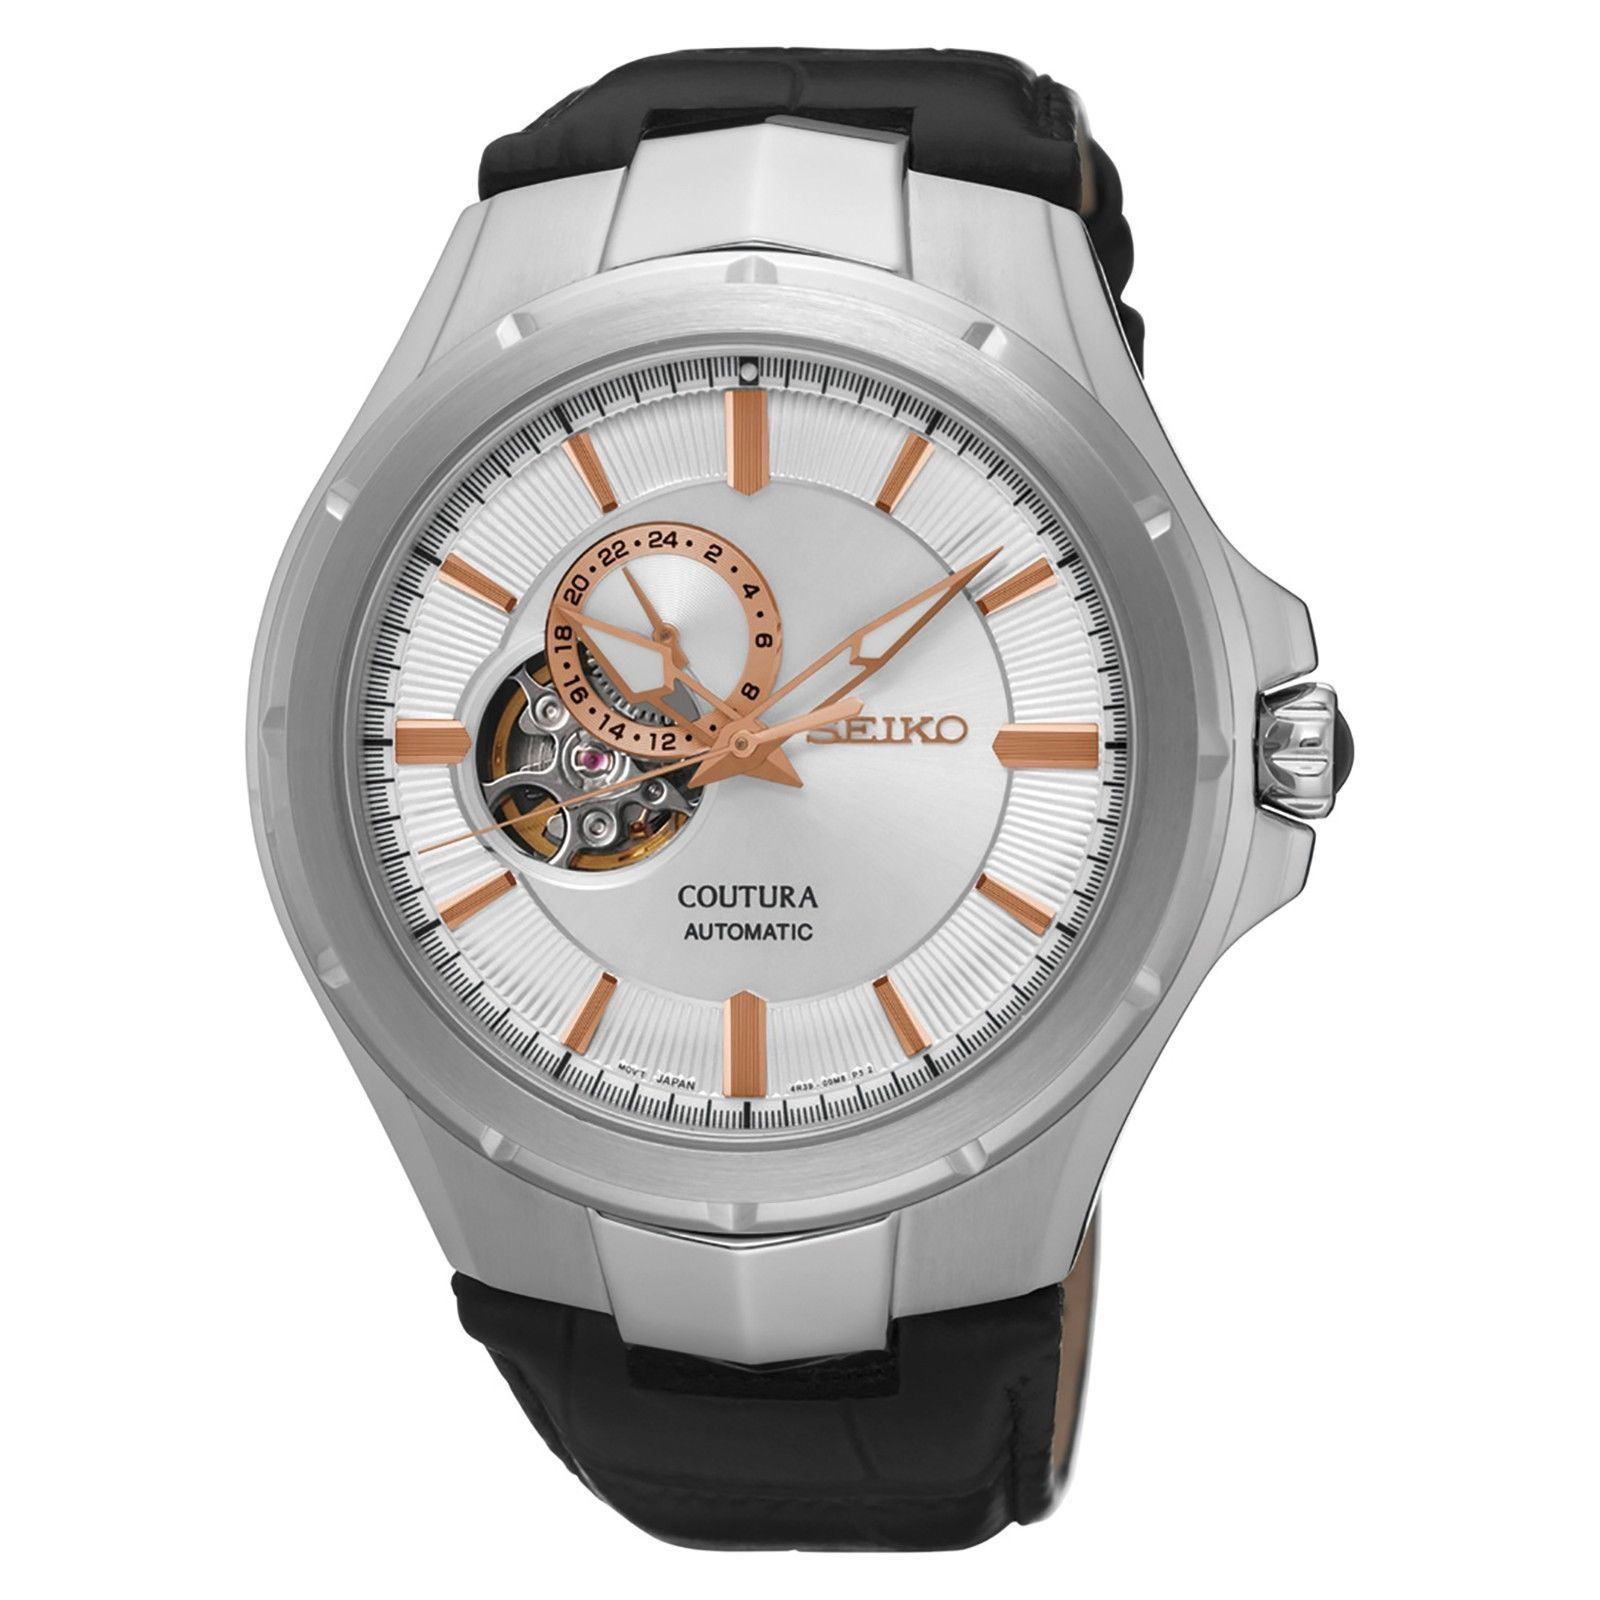 นาฬิกาผู้ชาย Seiko รุ่น SSA313, Coutura Automatic Leather Strap Stainless Steel